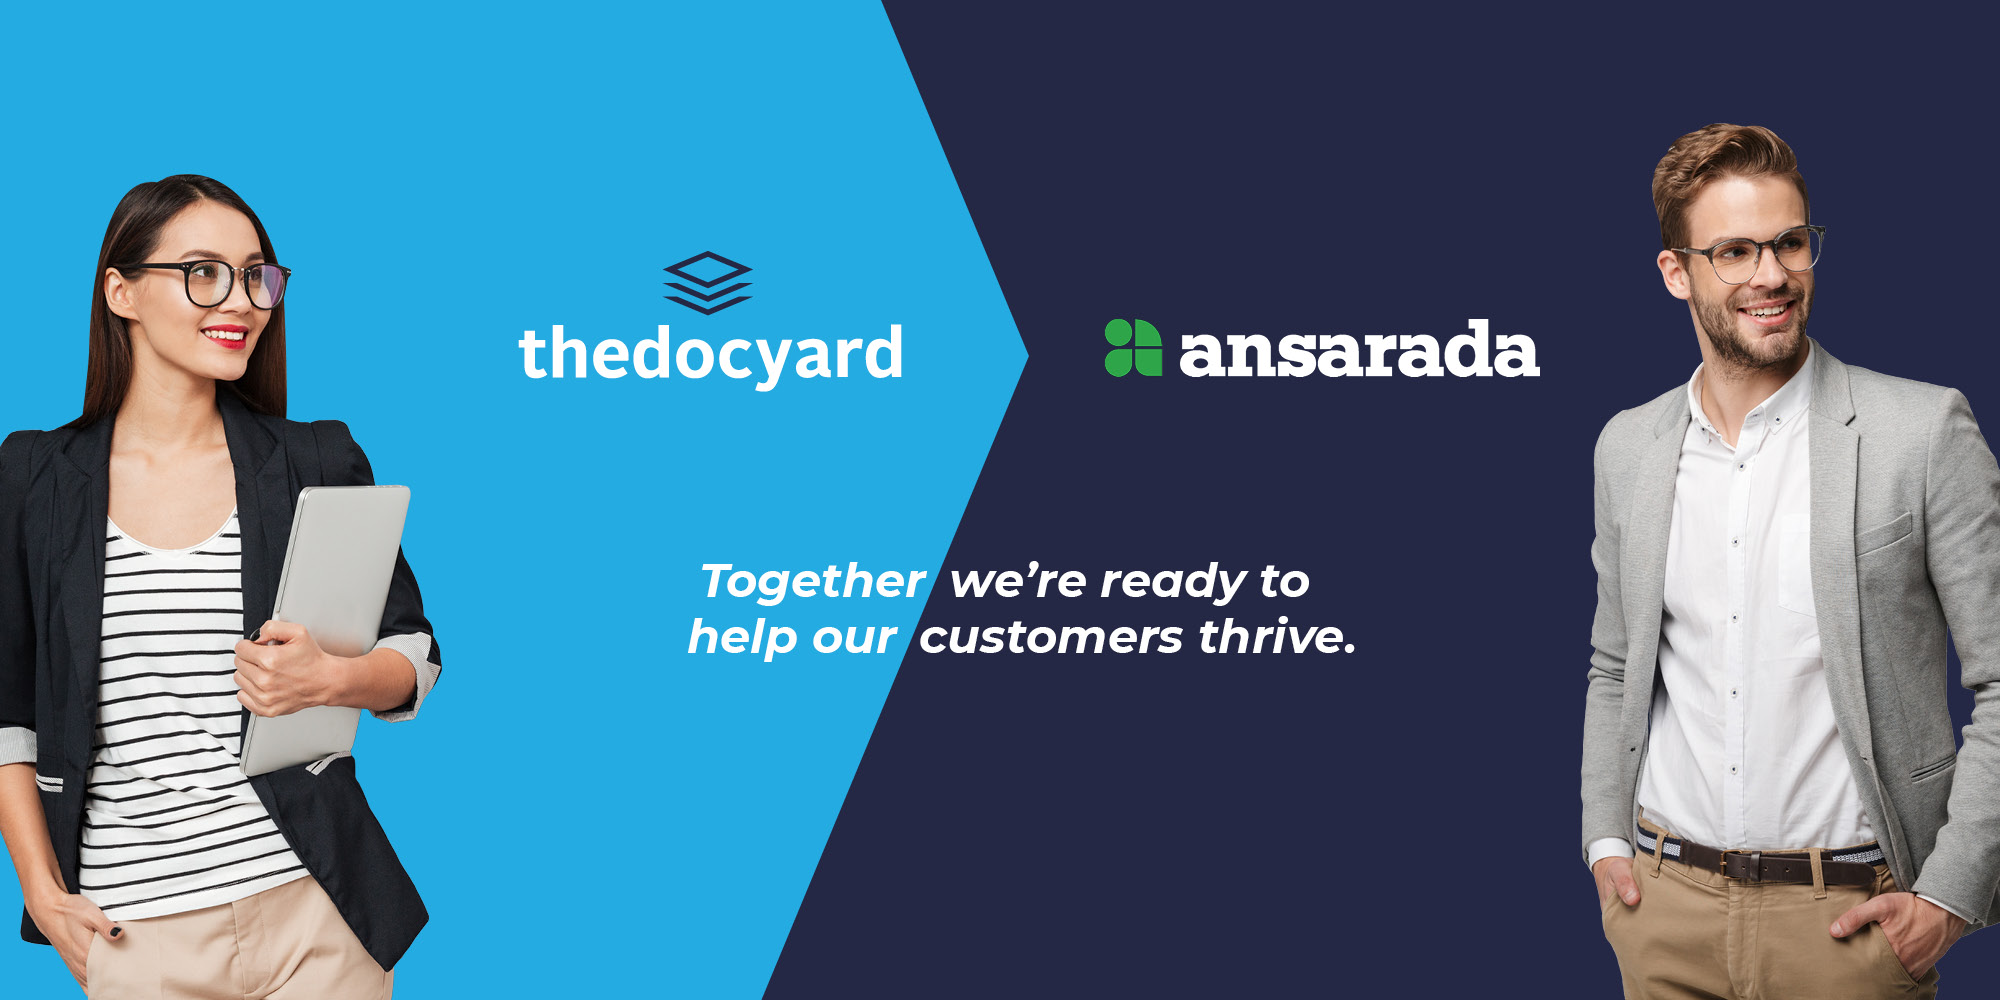 thedocyard joins forces with Ansarada | Blog